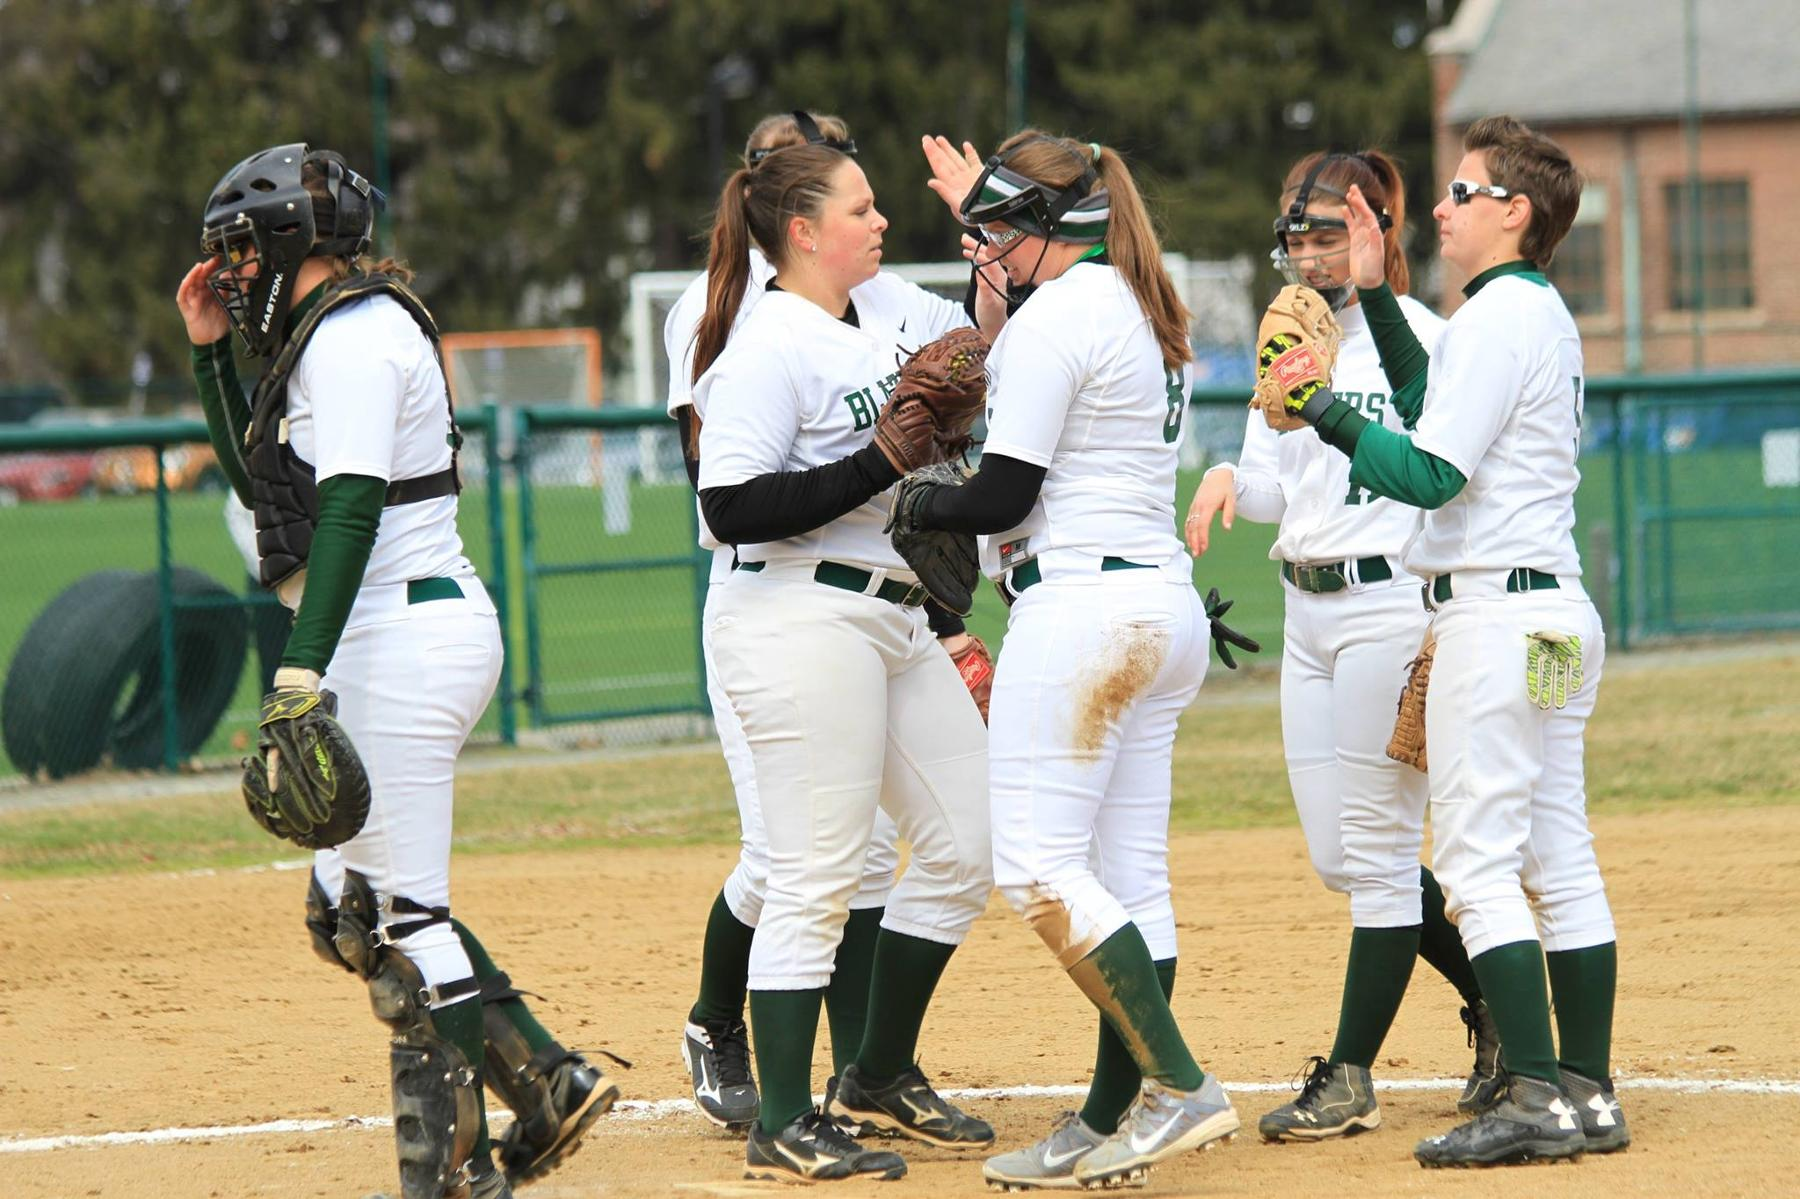 Softball Clubs Wheelock in NECC Twinbill